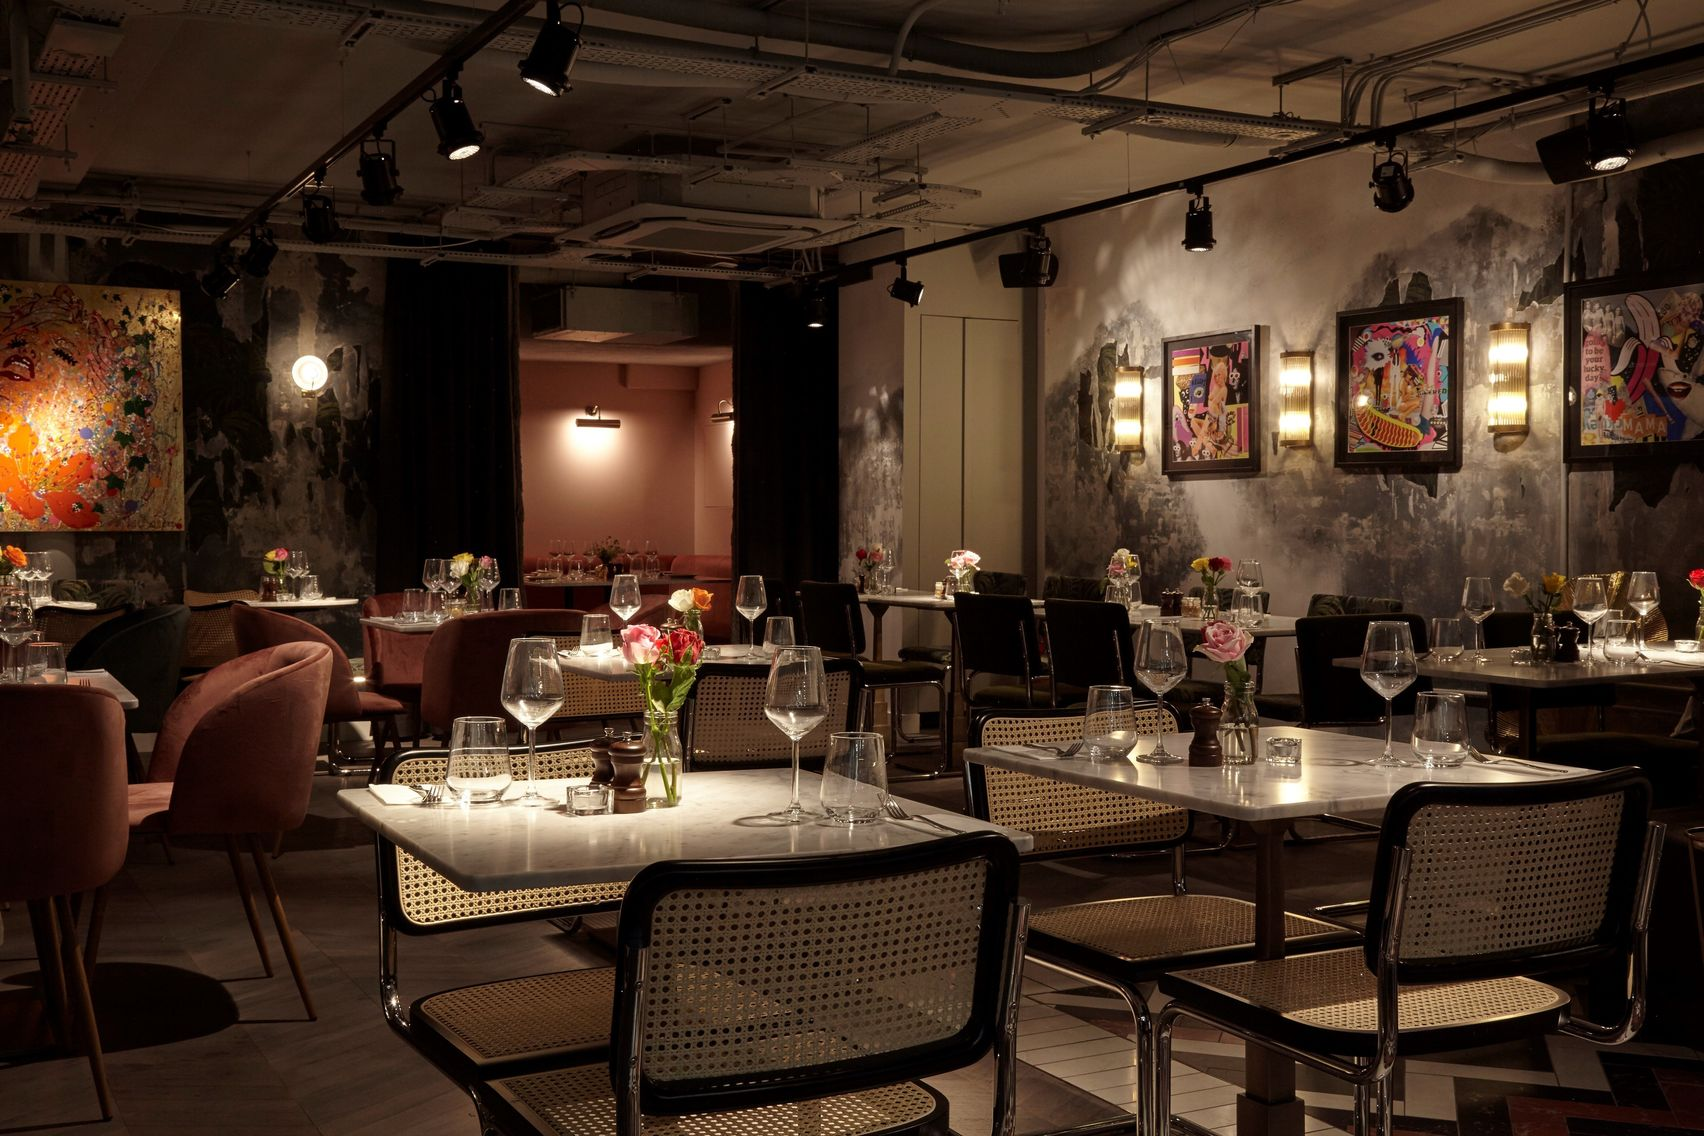 A large private dining room with white marble tables and art on the walls